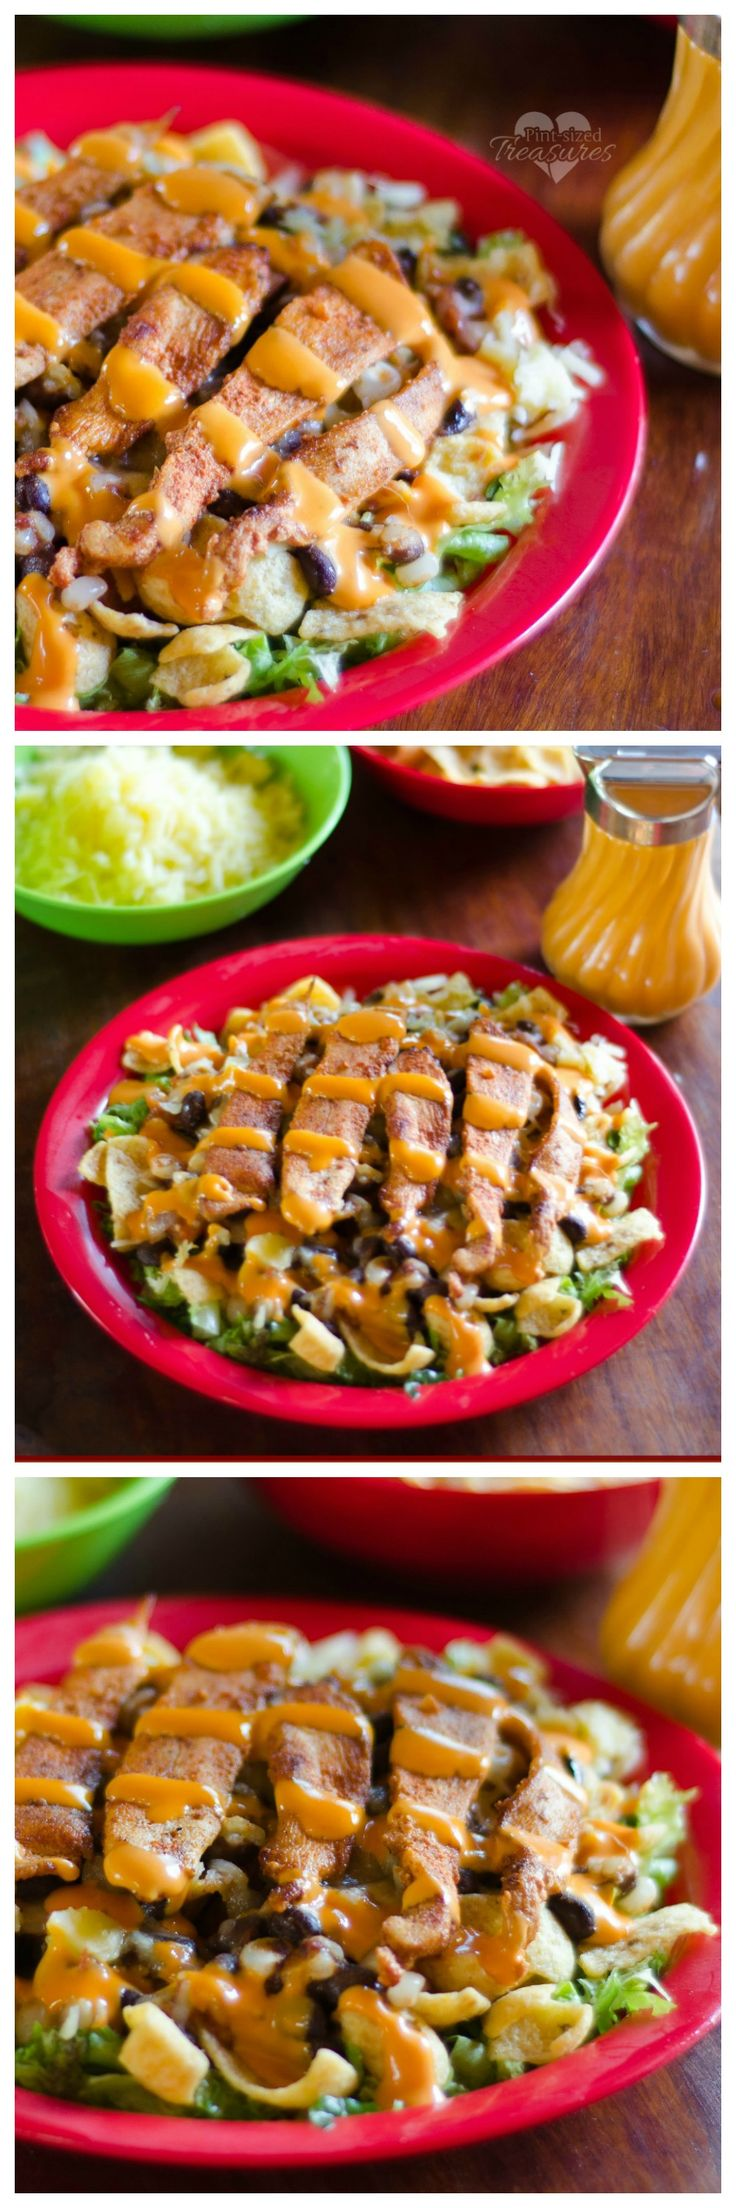 Southwestern Chopped Chicken Salad --- it's the salad of your dreams! Booming with fresh flavors and toppings this chopped salad is going to be your fave salad recipe ever! Includes a simple but amazing spice rub! #bestrecipesever #salads #choppedsalads #southwestern